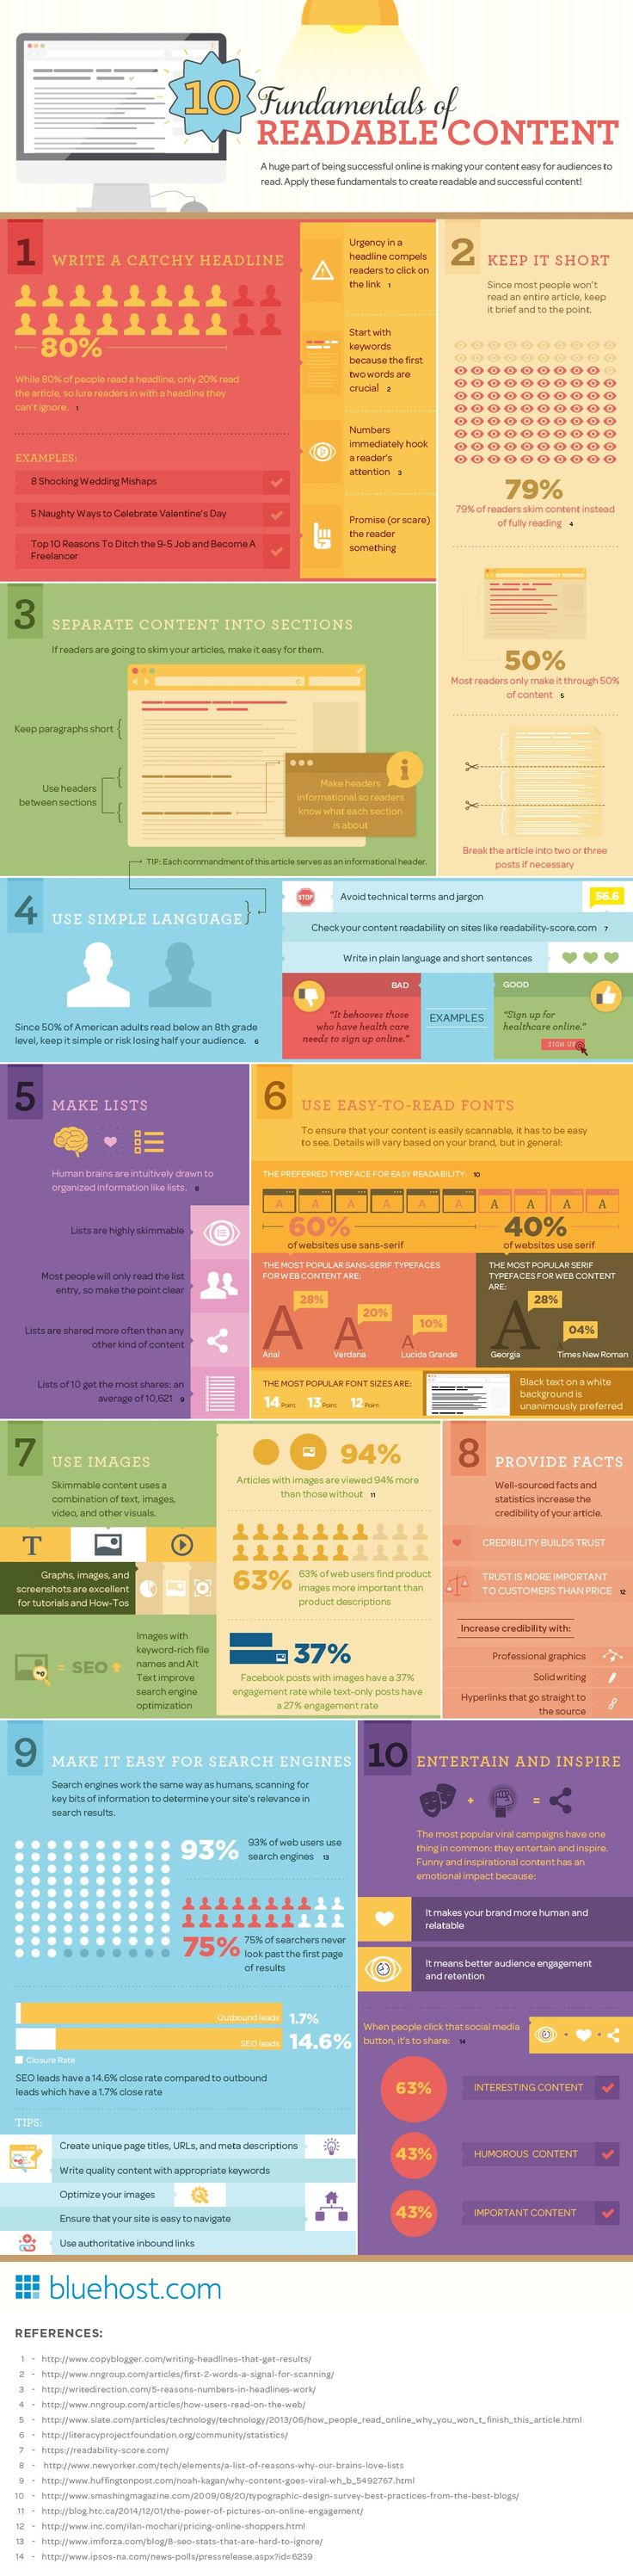 10 Fundamentals Of Readable Content [Infographic]   Social Media Today We can help you with this.